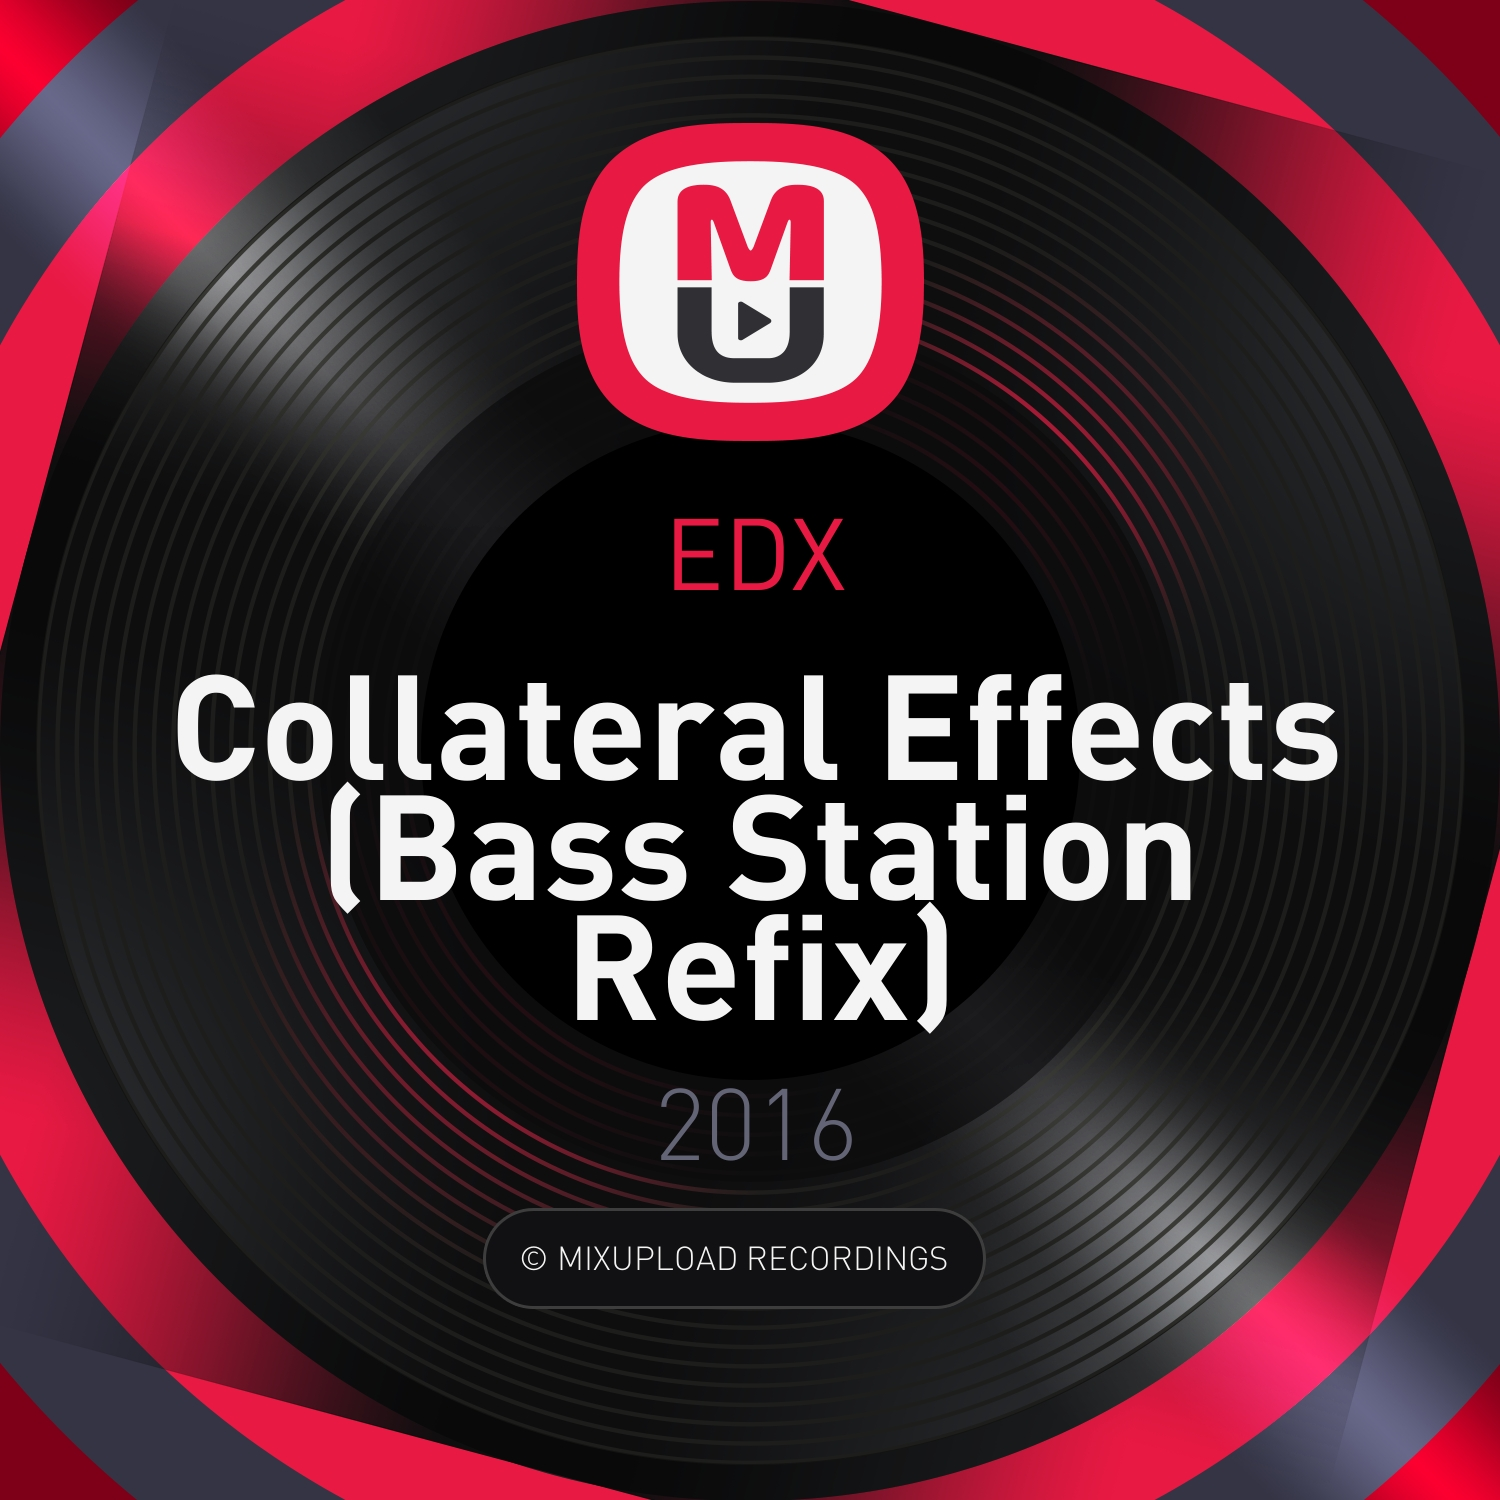 EDX - Collateral Effects (Bass Station Refix)